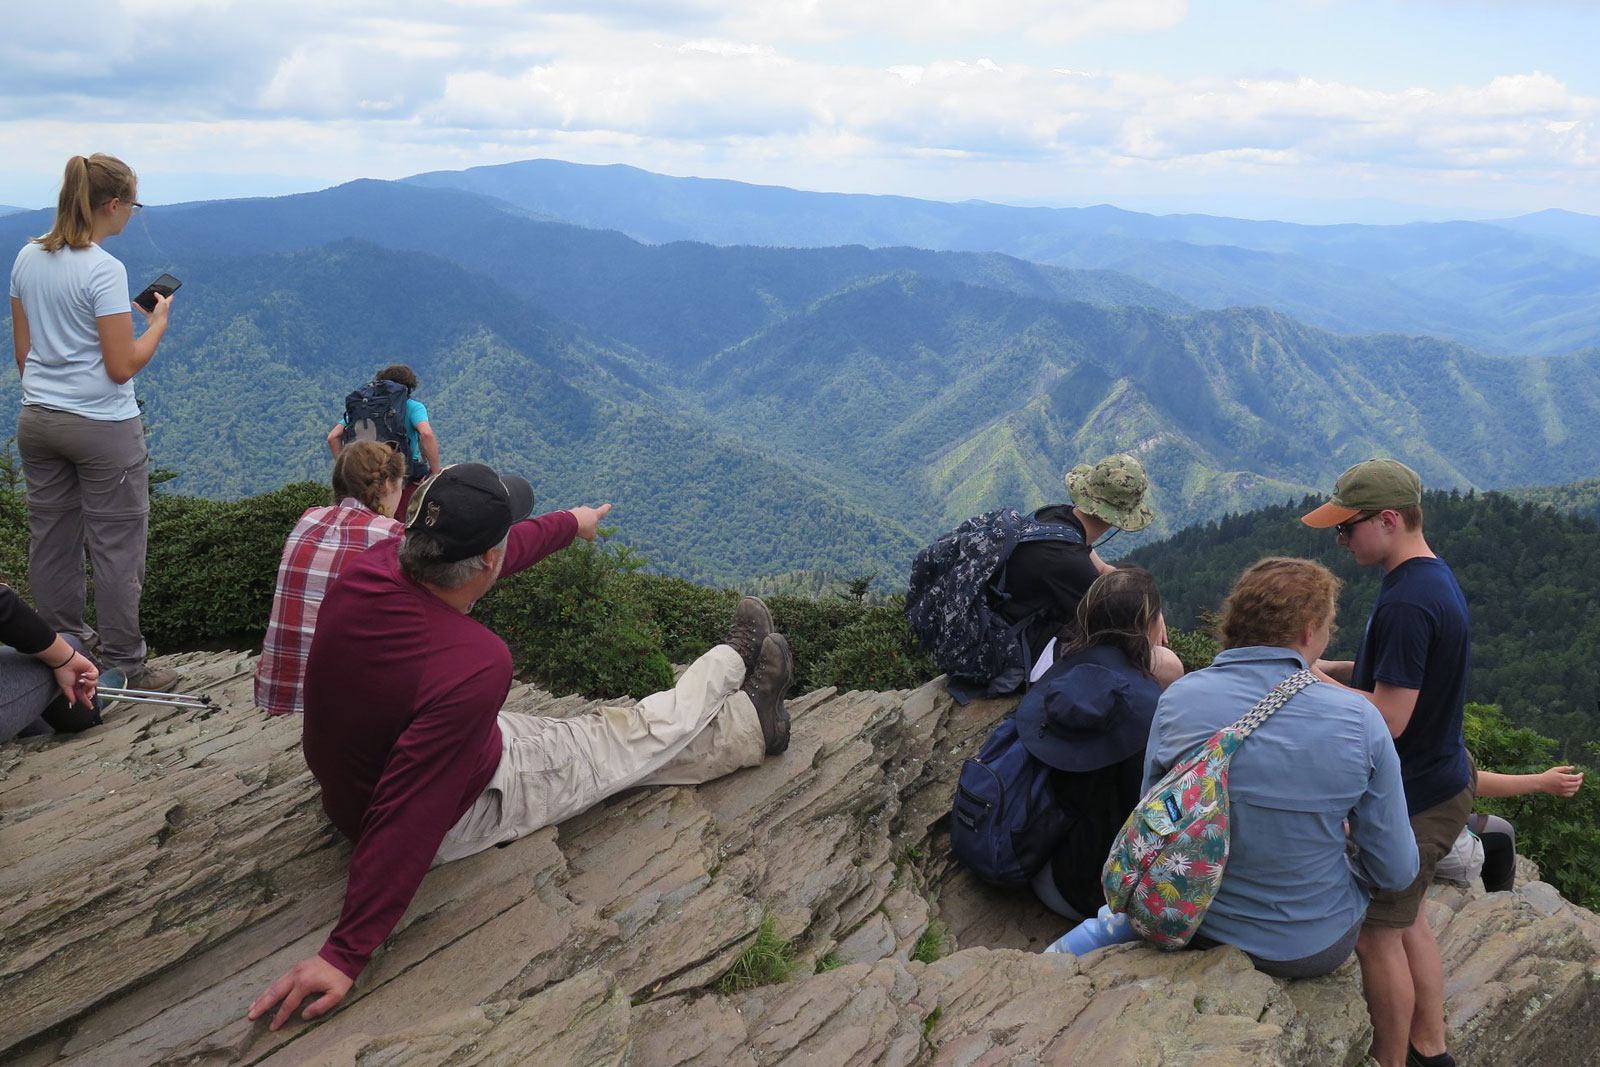 Students in the Great Smokies Experience take in the sights of the Smoky Mountains